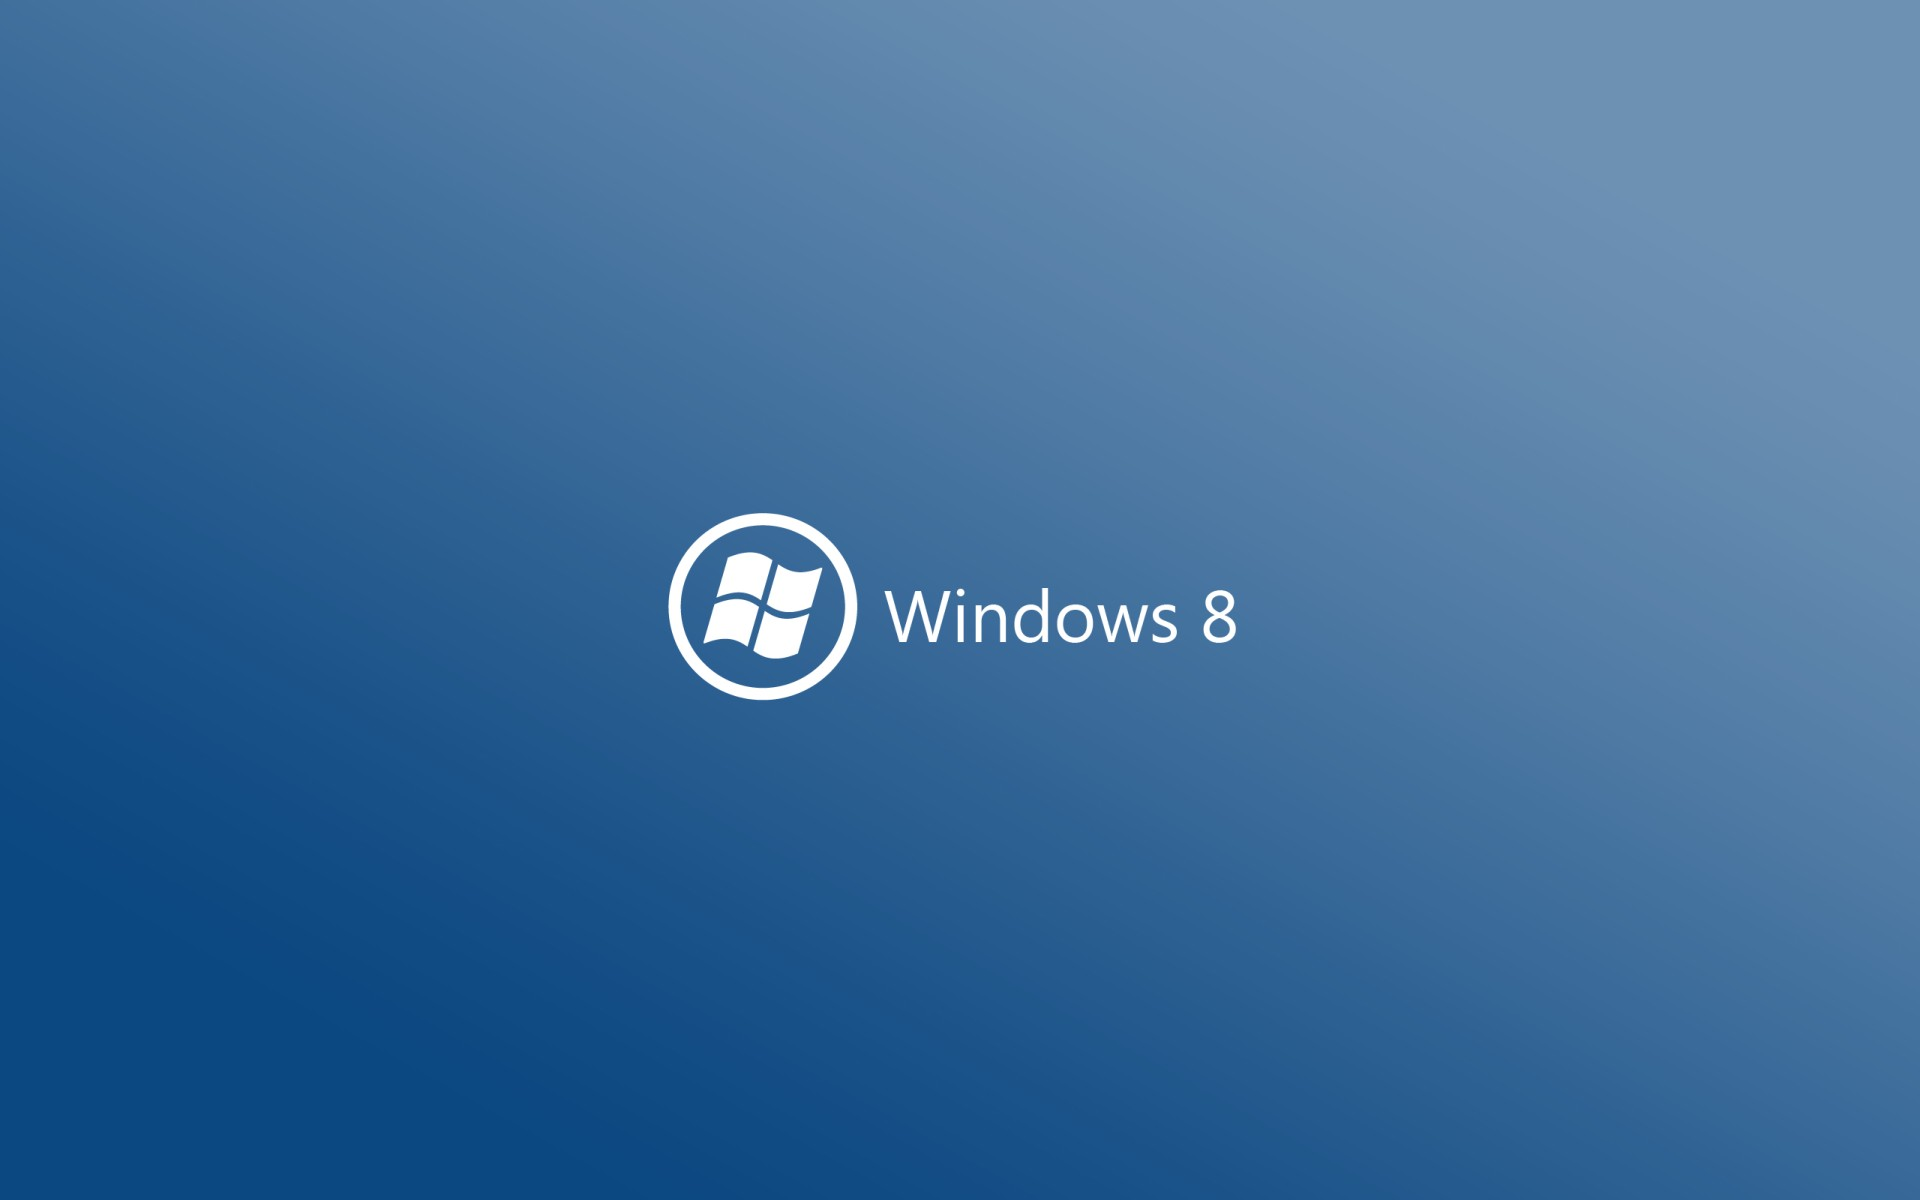 WINDOWS 8 WALLPAPERS WITH LOGO   10 HD WALLPAPERS TechMumbai 1920x1200